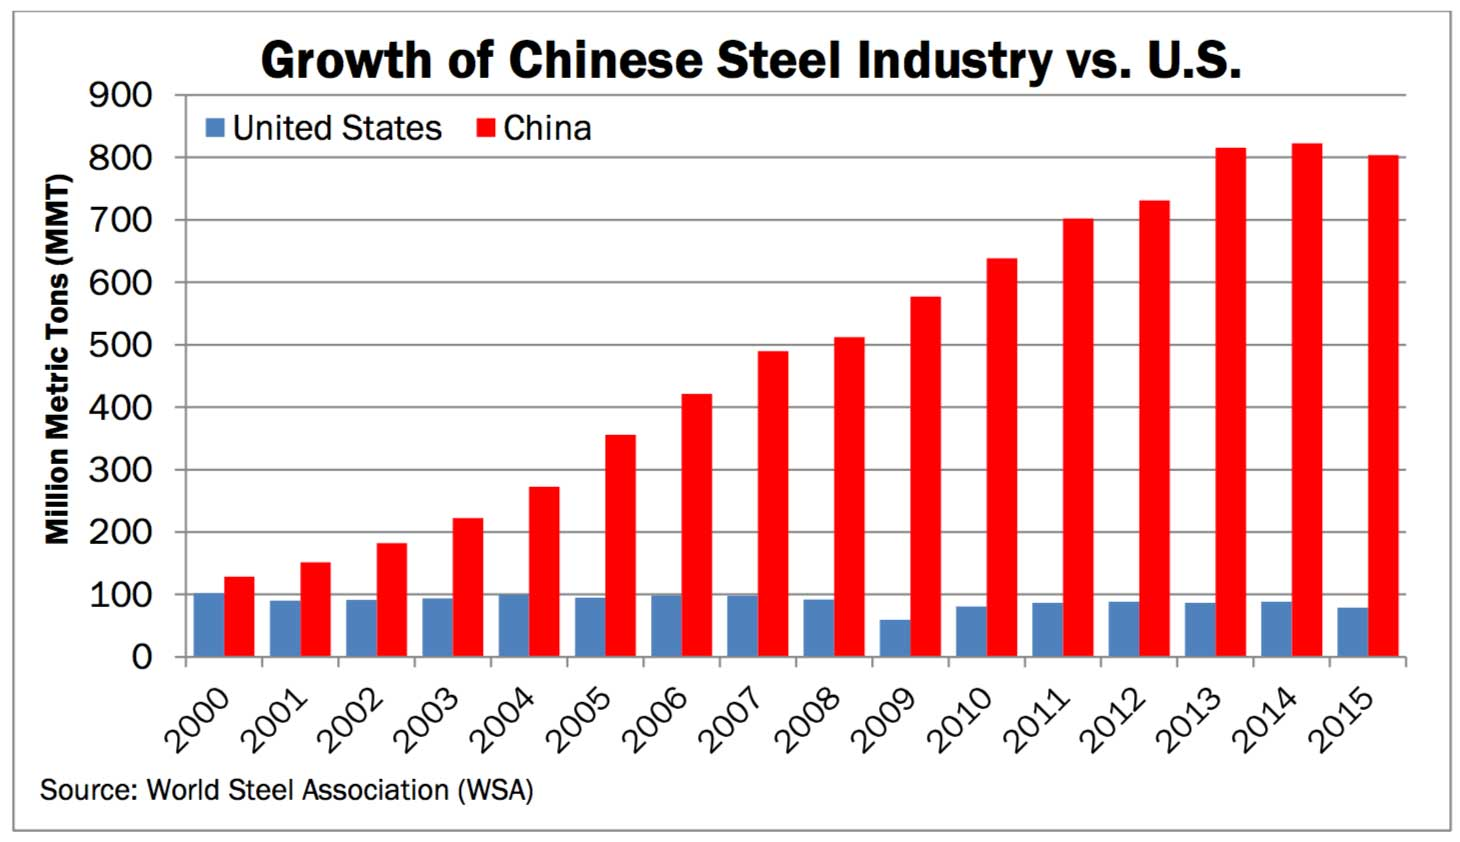 growth-china-steel-industry-vs-US-2000-2015